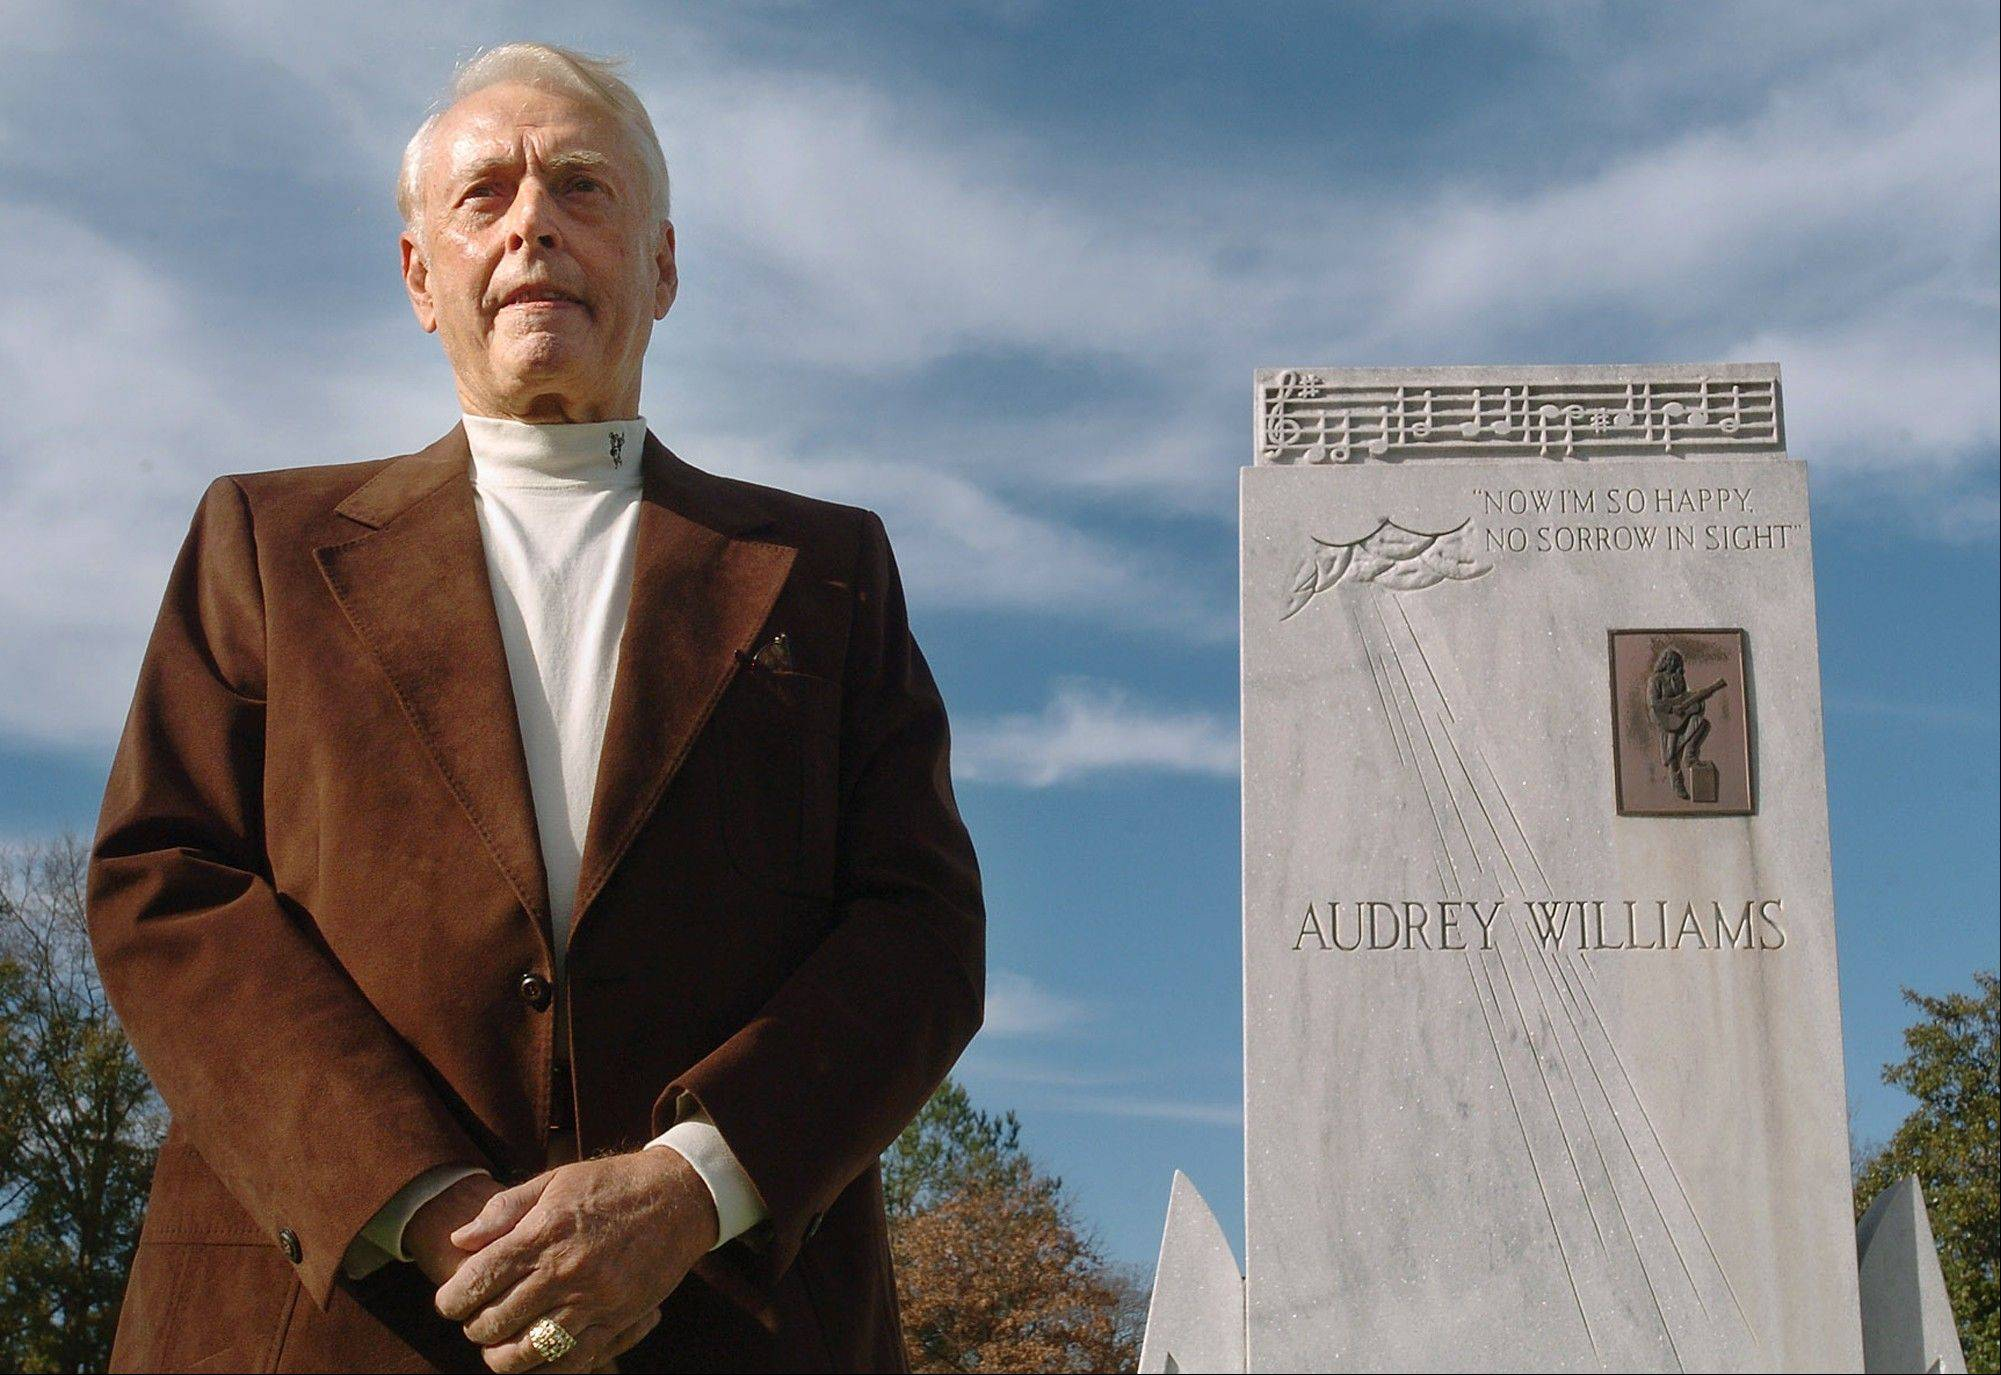 Charles Carr is shown at the graves of Hank and Audrey Williams in Oakwood Cemetery in Montgomery, Ala. in this Monday, Jan. 1, 2007, photo. Carr died on Monday, July 1, 2013, after a brief illness. He was 77. Carr was driving Hank Williams through Oak Hill, W. Va., when Williams died on New Year's Day in 1953.